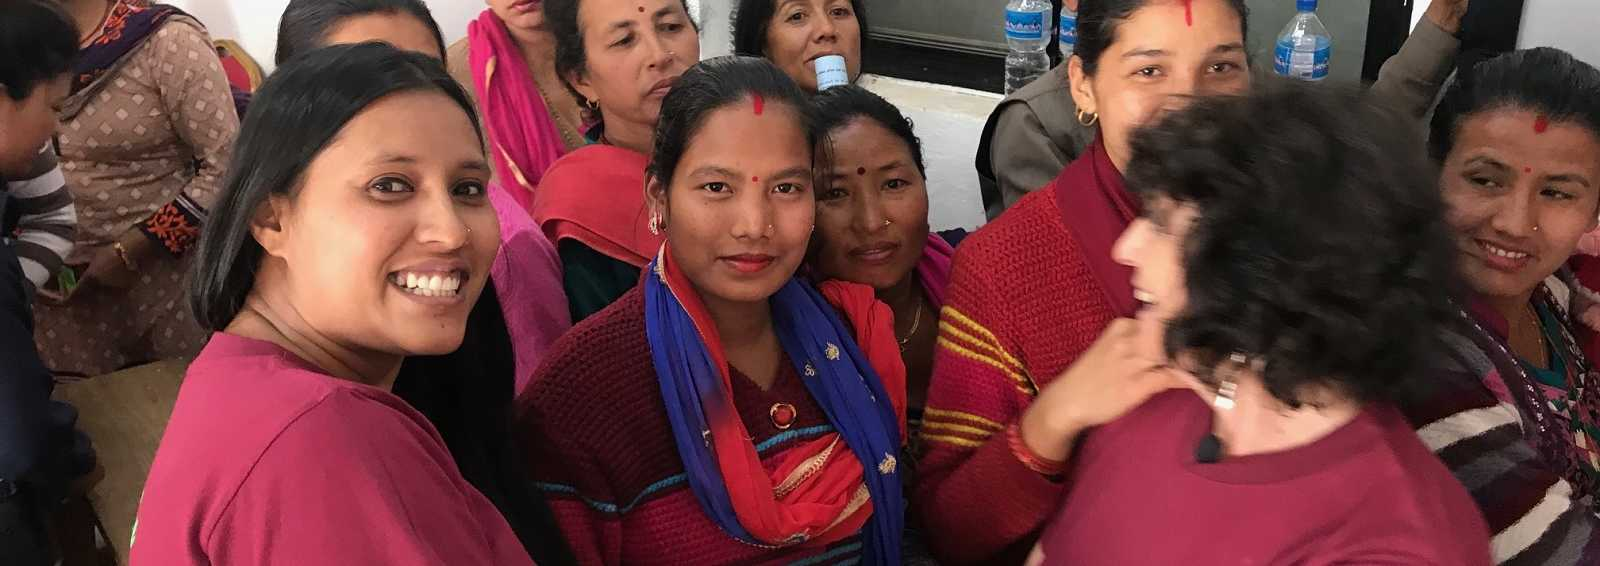 Nepalese Women with Freedom Kit Bags